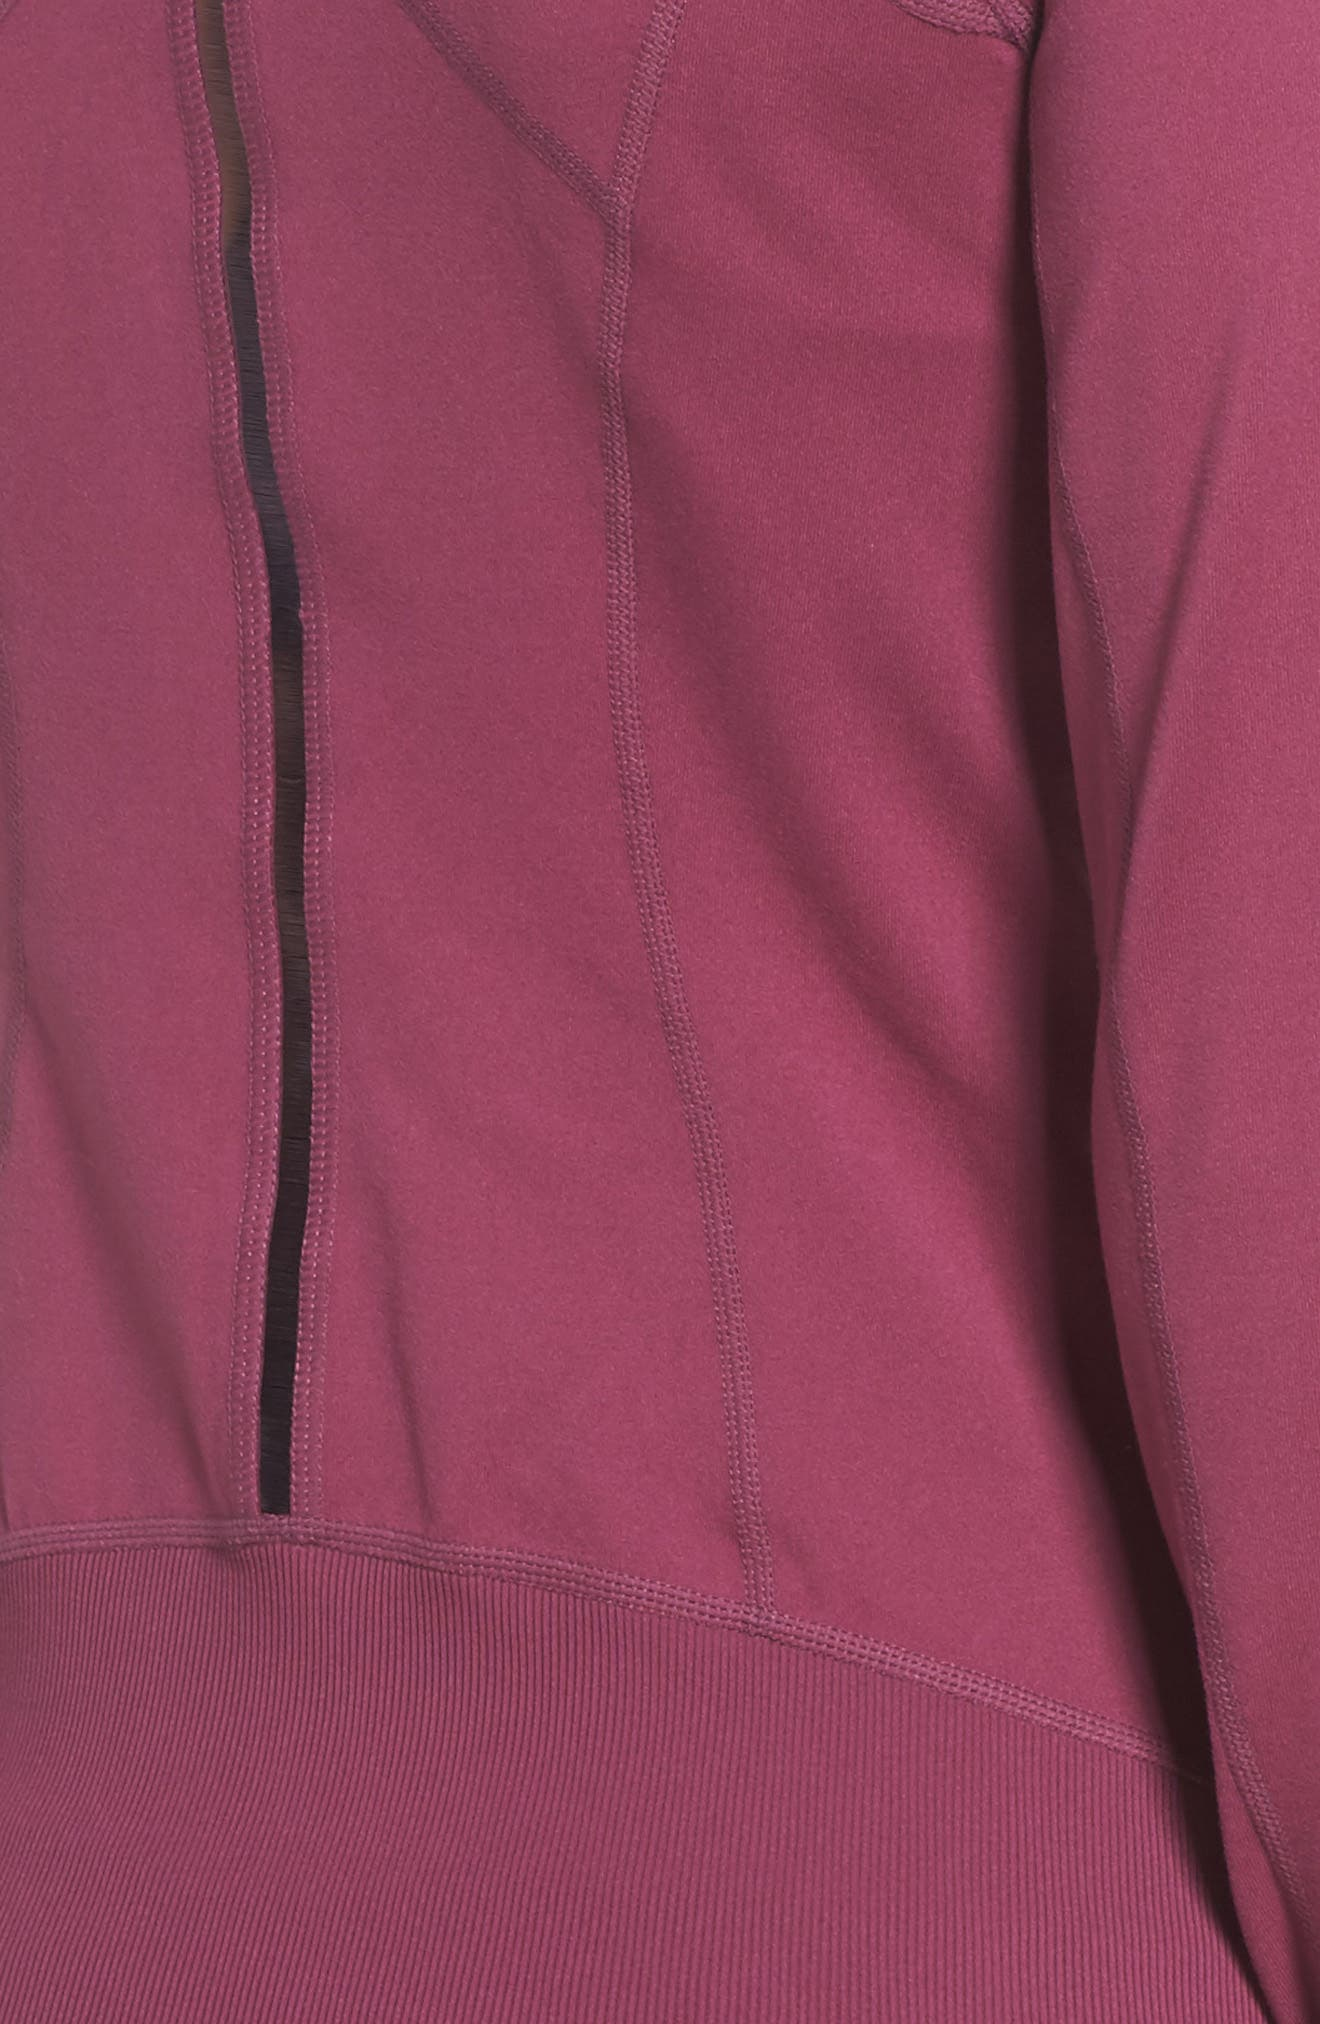 Presence Training Jacket,                             Alternate thumbnail 6, color,                             Purple Cabbage